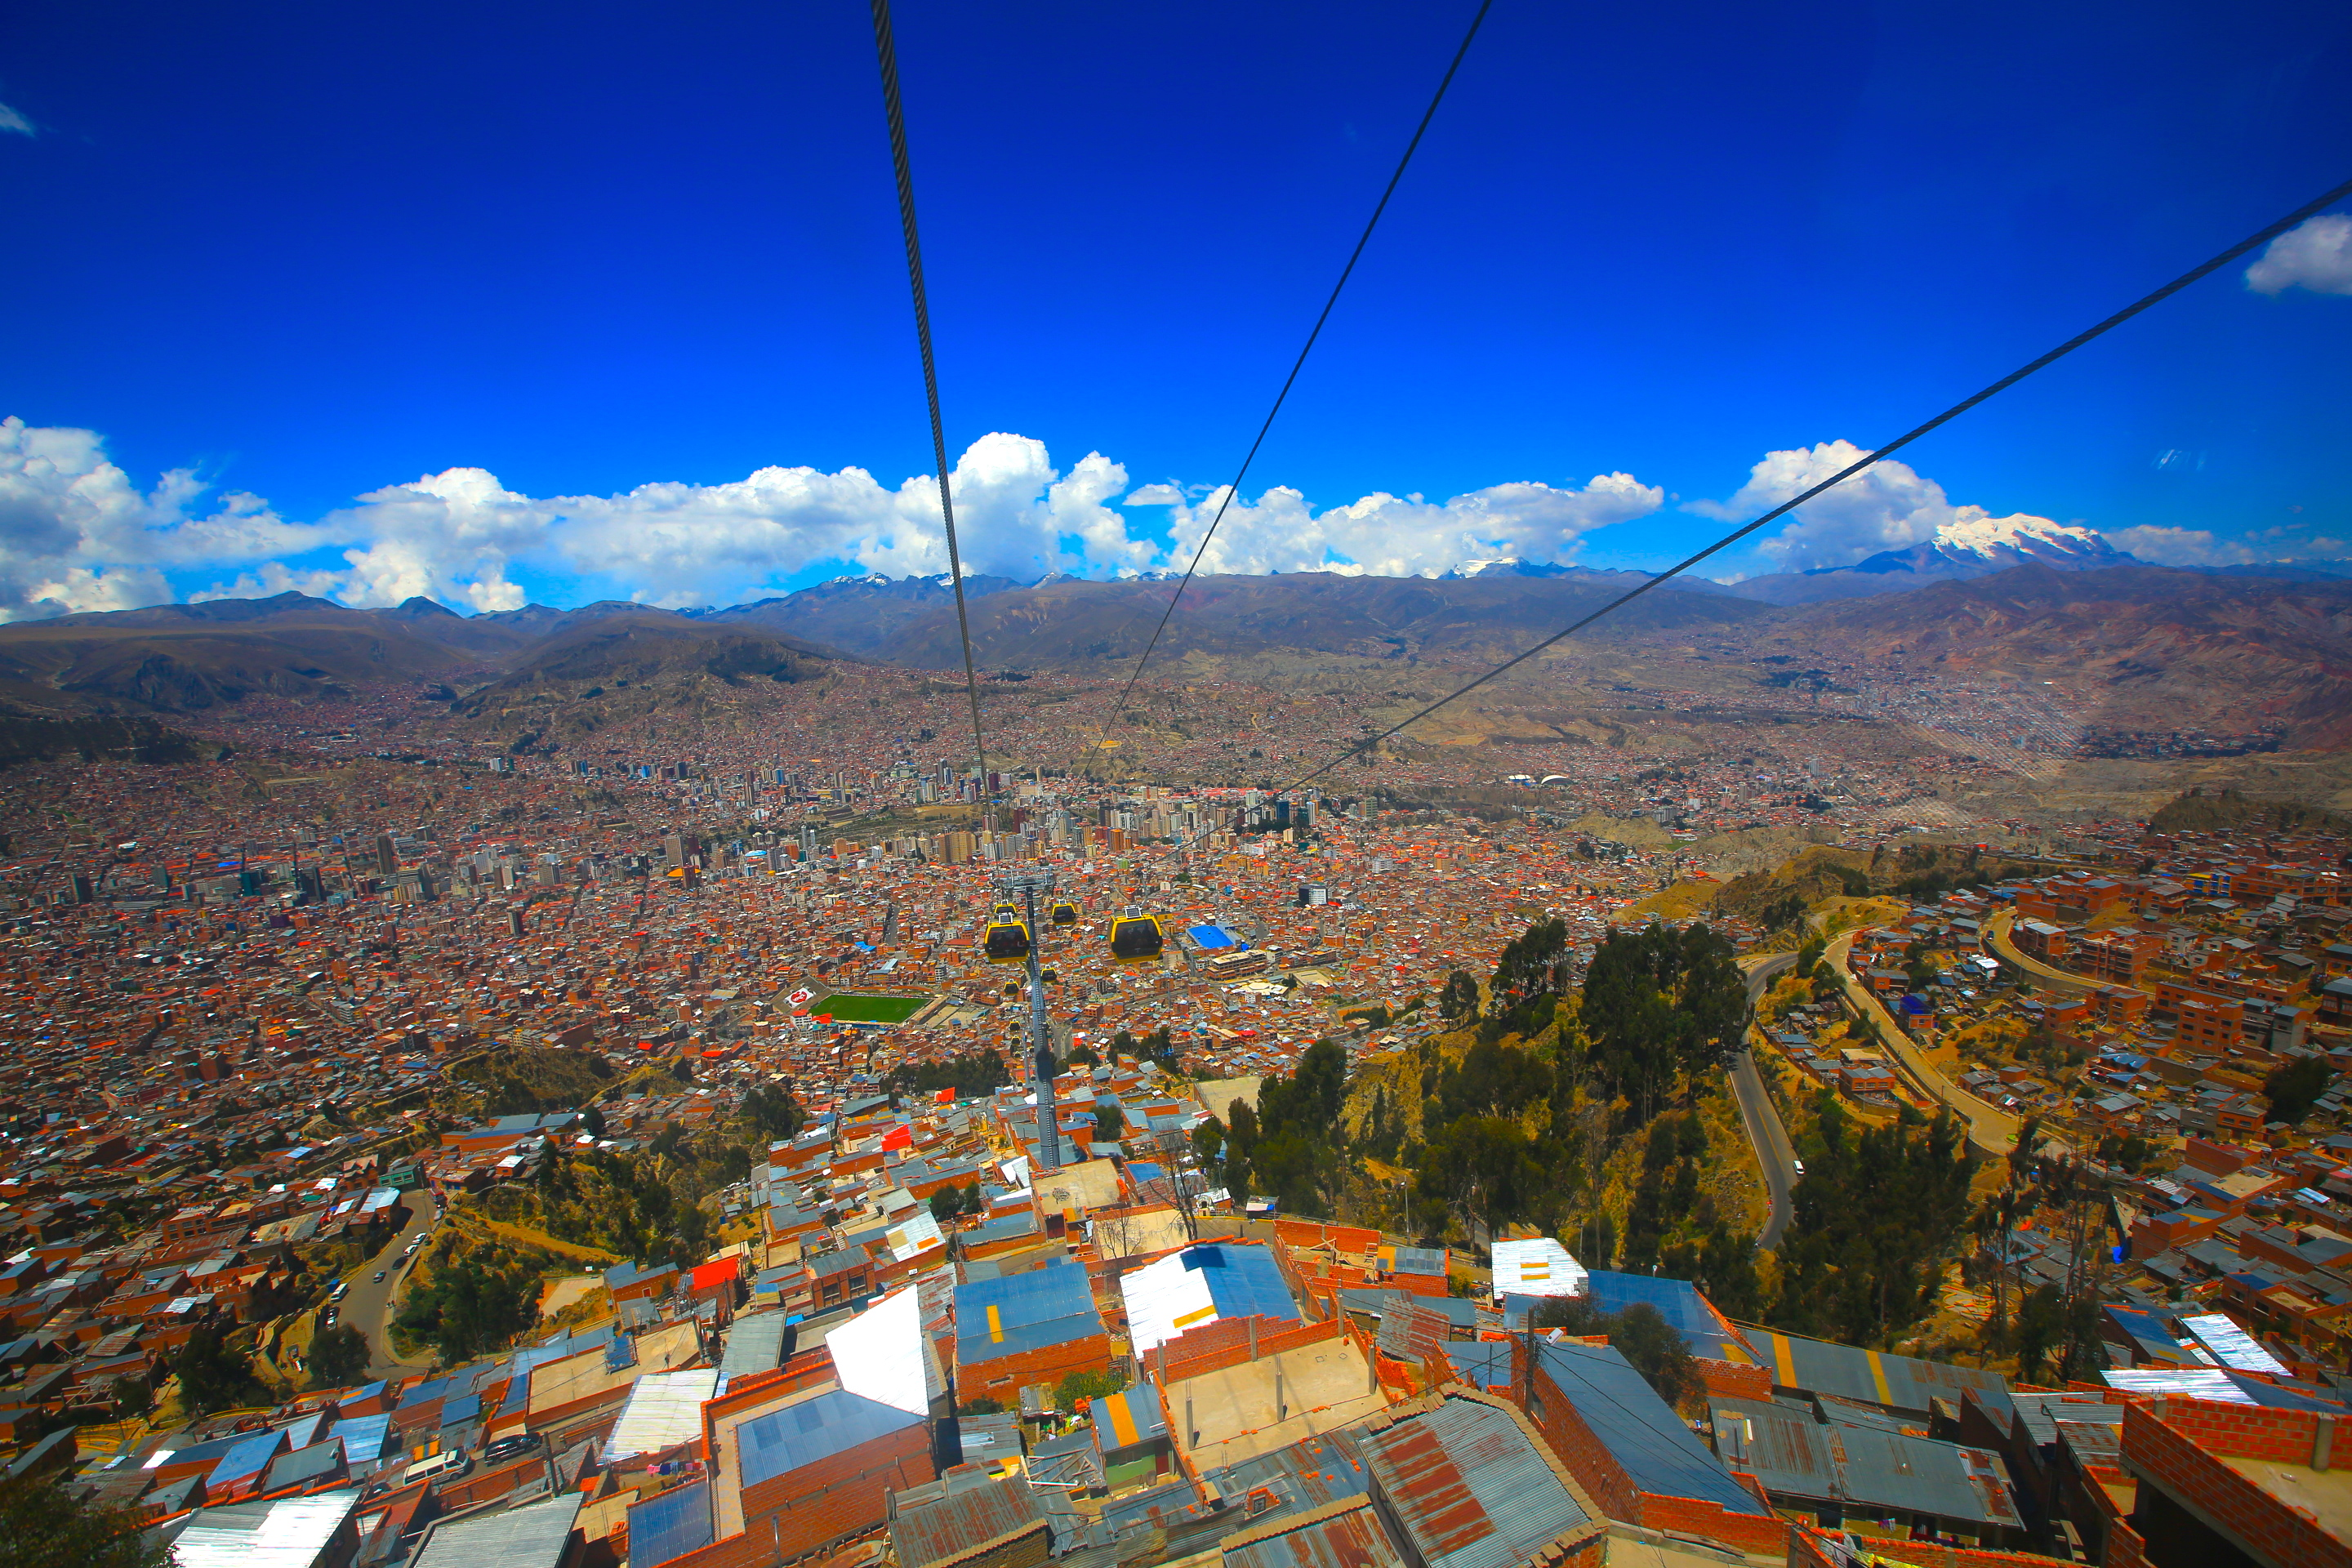 La paz bolivia song of the road for Is la a city